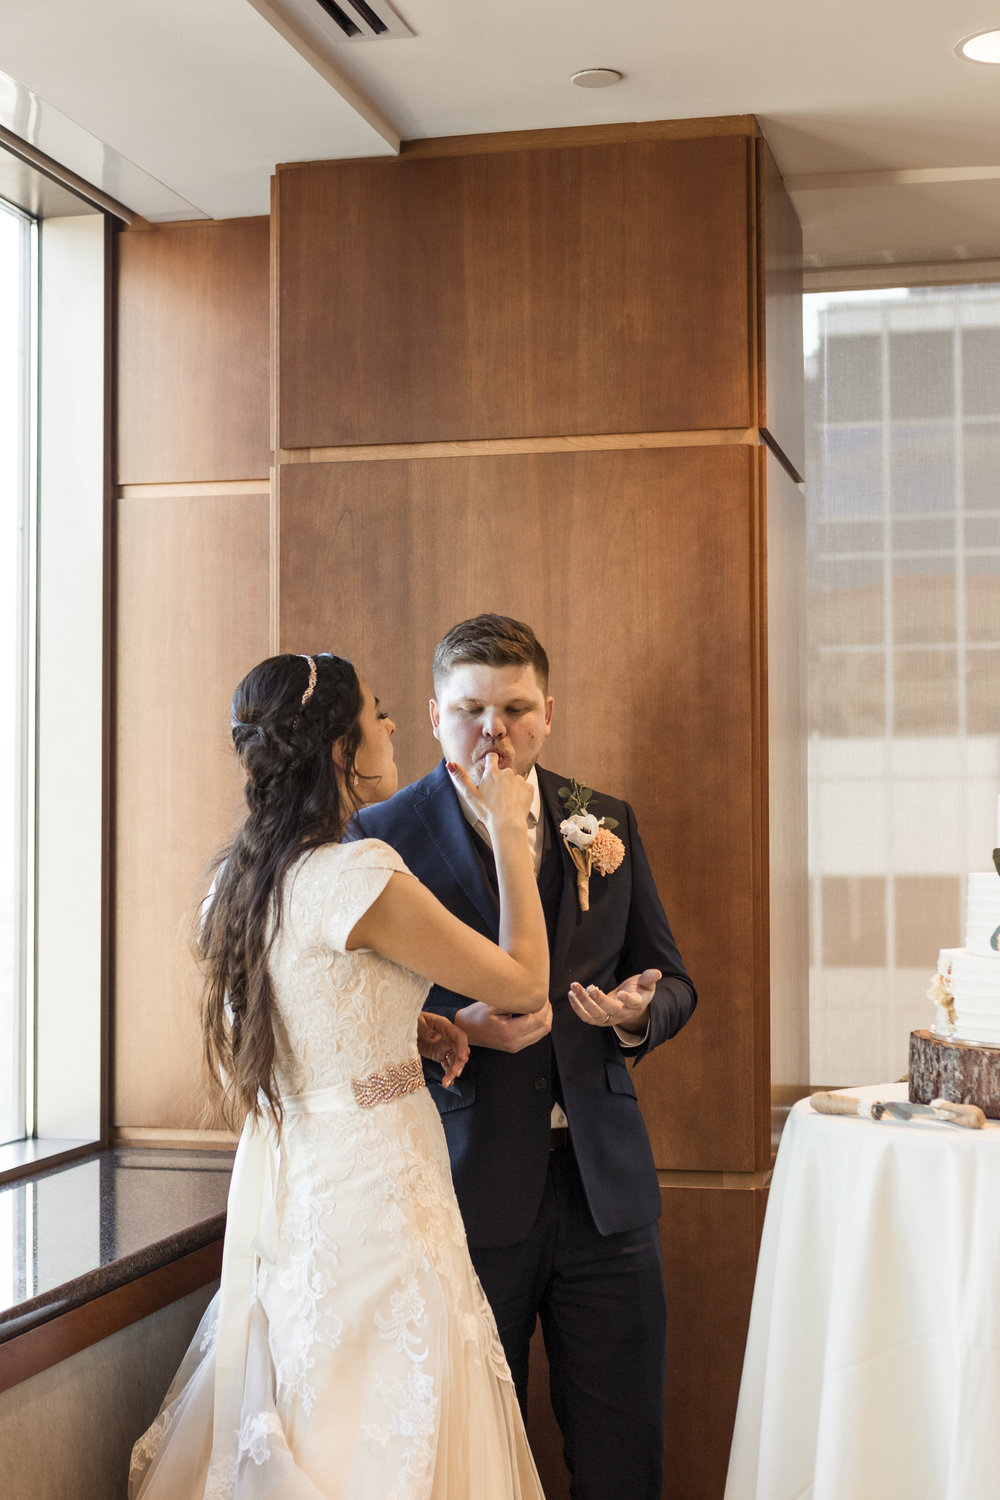 Utah Spring Wedding Reception in the Zions Bank Founders Room by Bri Bergman Photography16.JPG